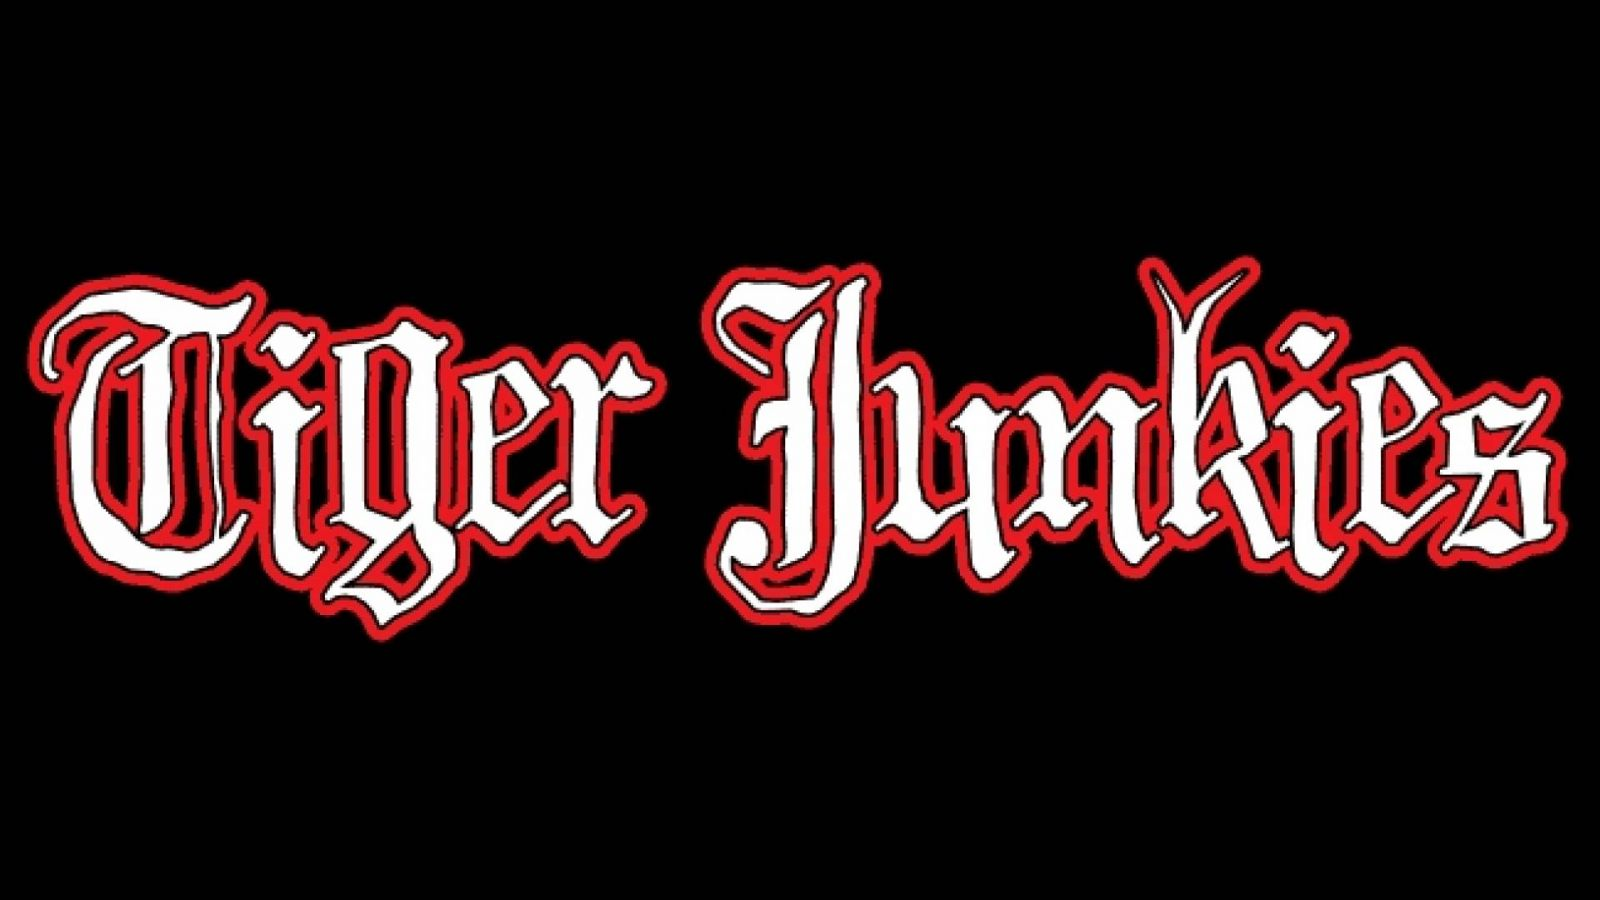 TIGER JUNKIES © TIGER JUNKIES. All Rights Reserved